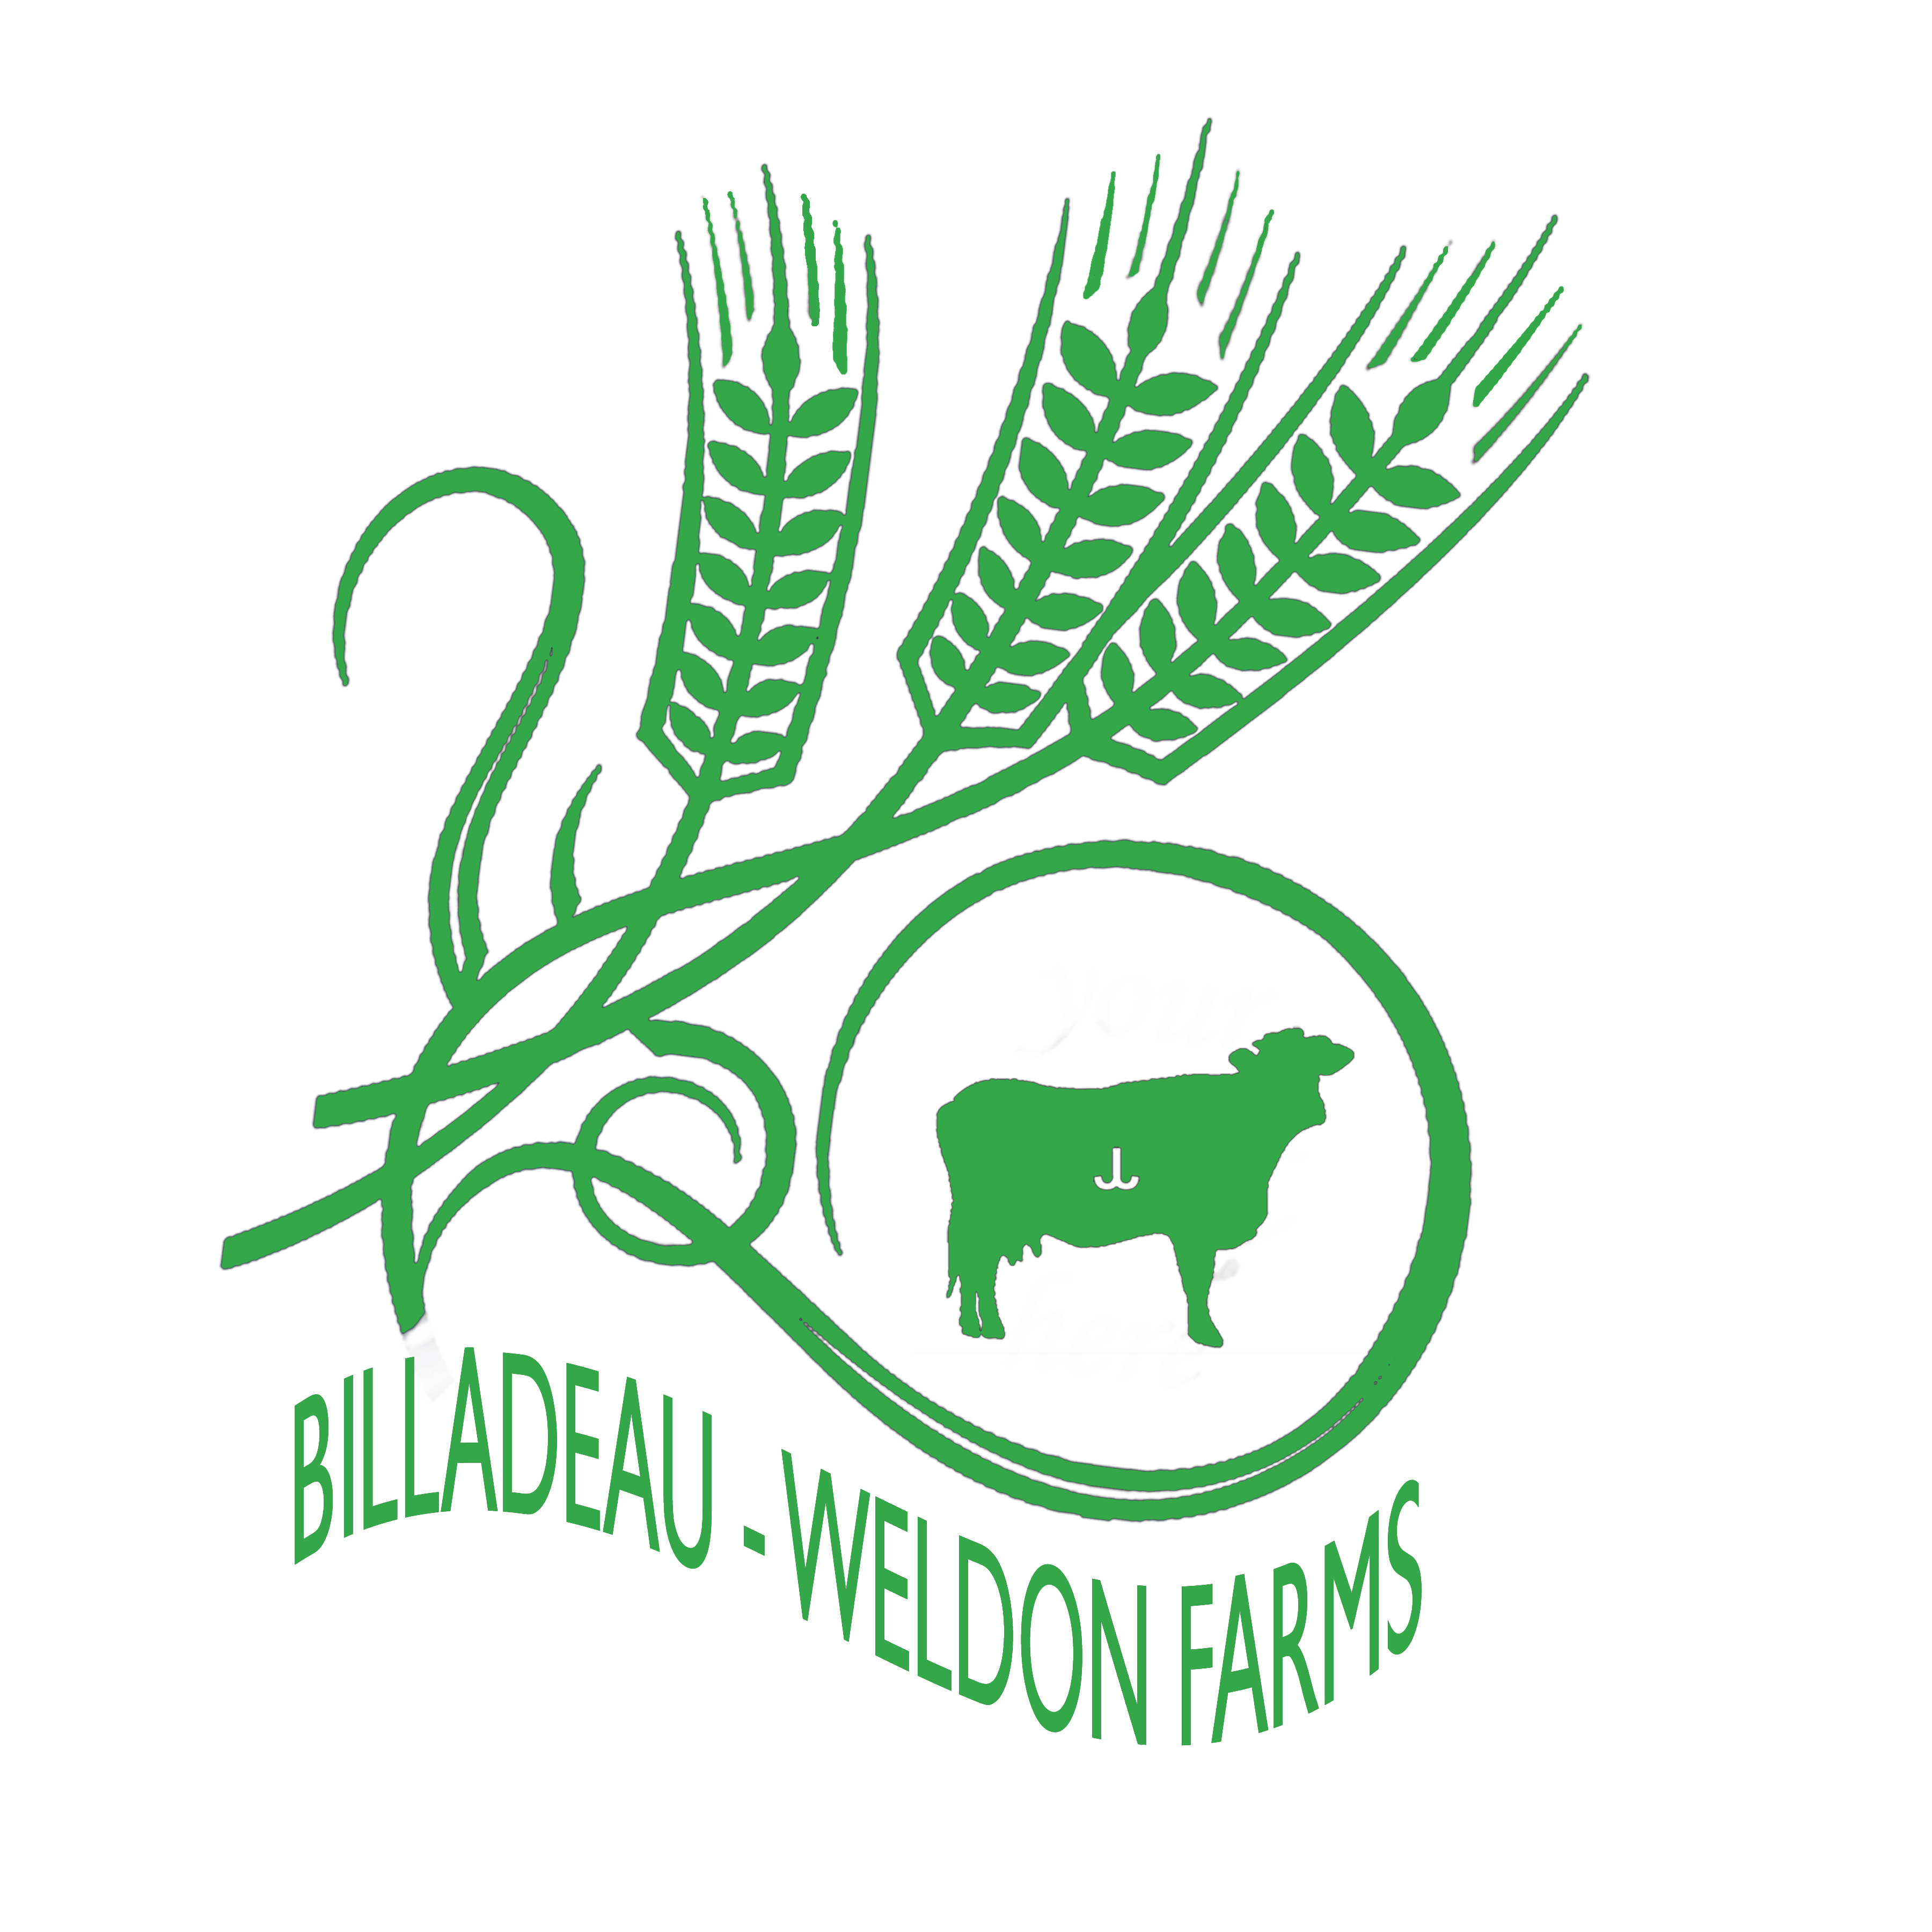 billadeau_weldon_farms.jpg Image